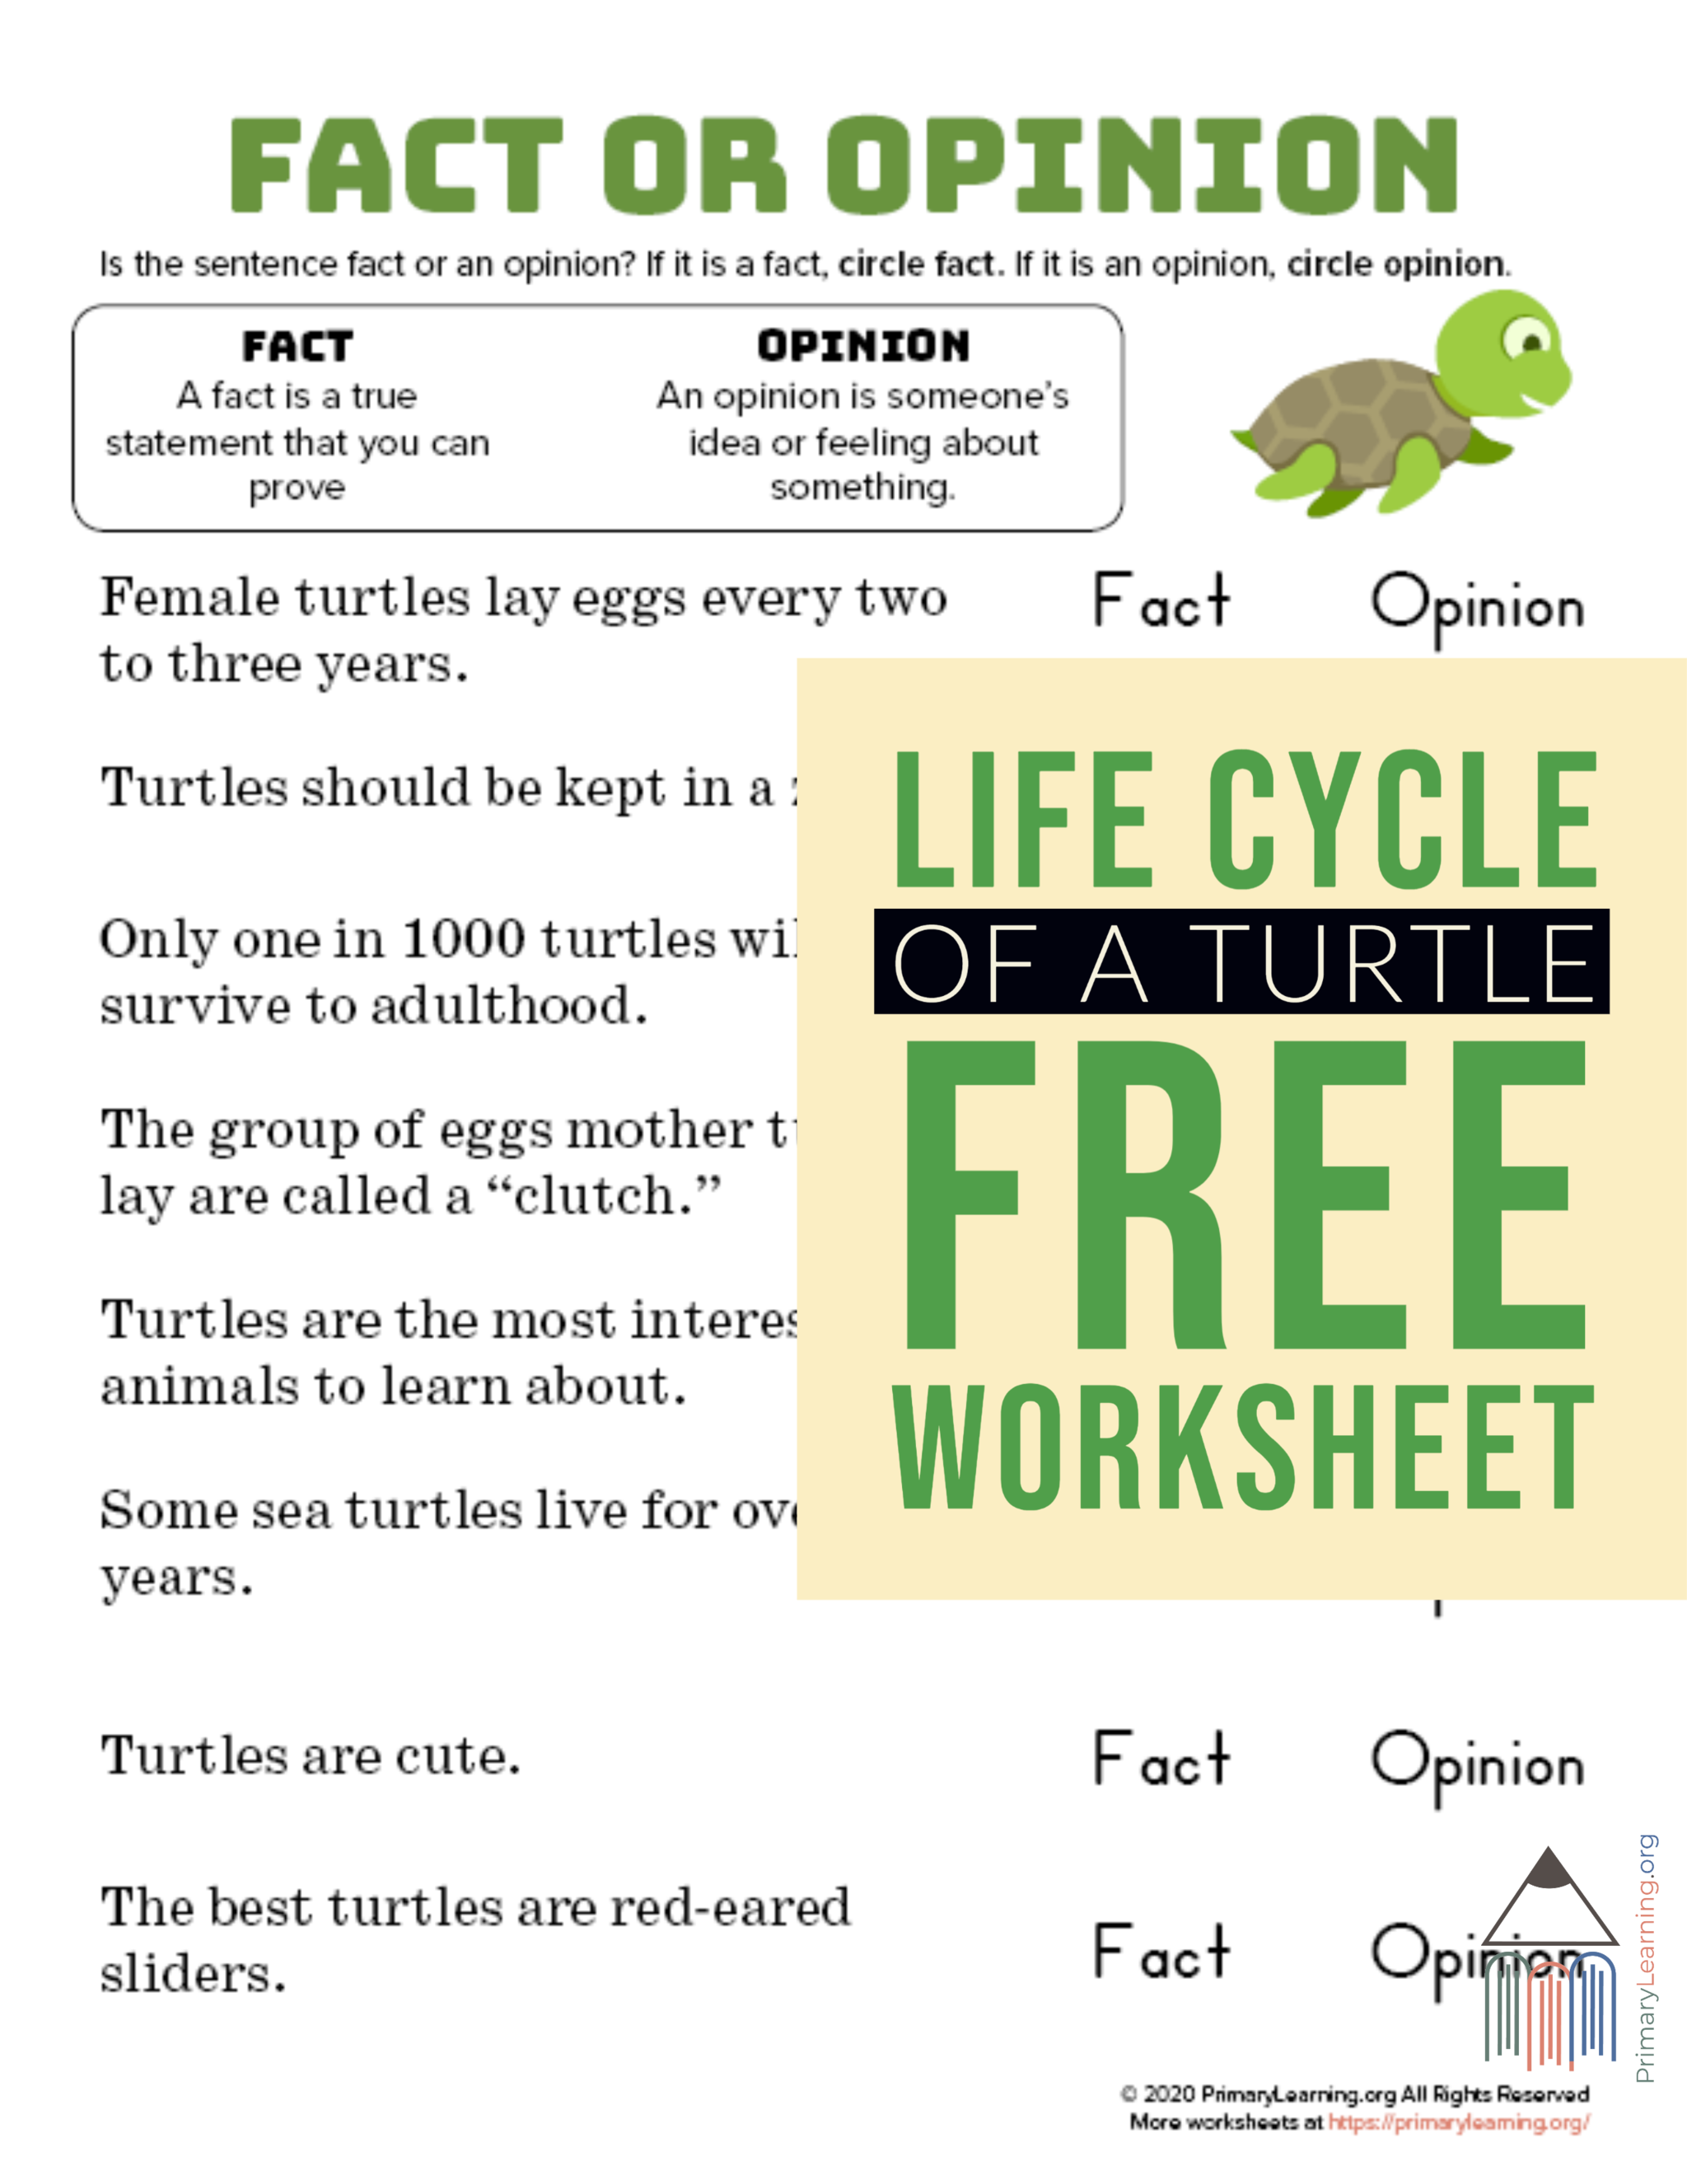 medium resolution of Turtle - Facts and Opinions   PrimaryLearning.org   Fact and opinion